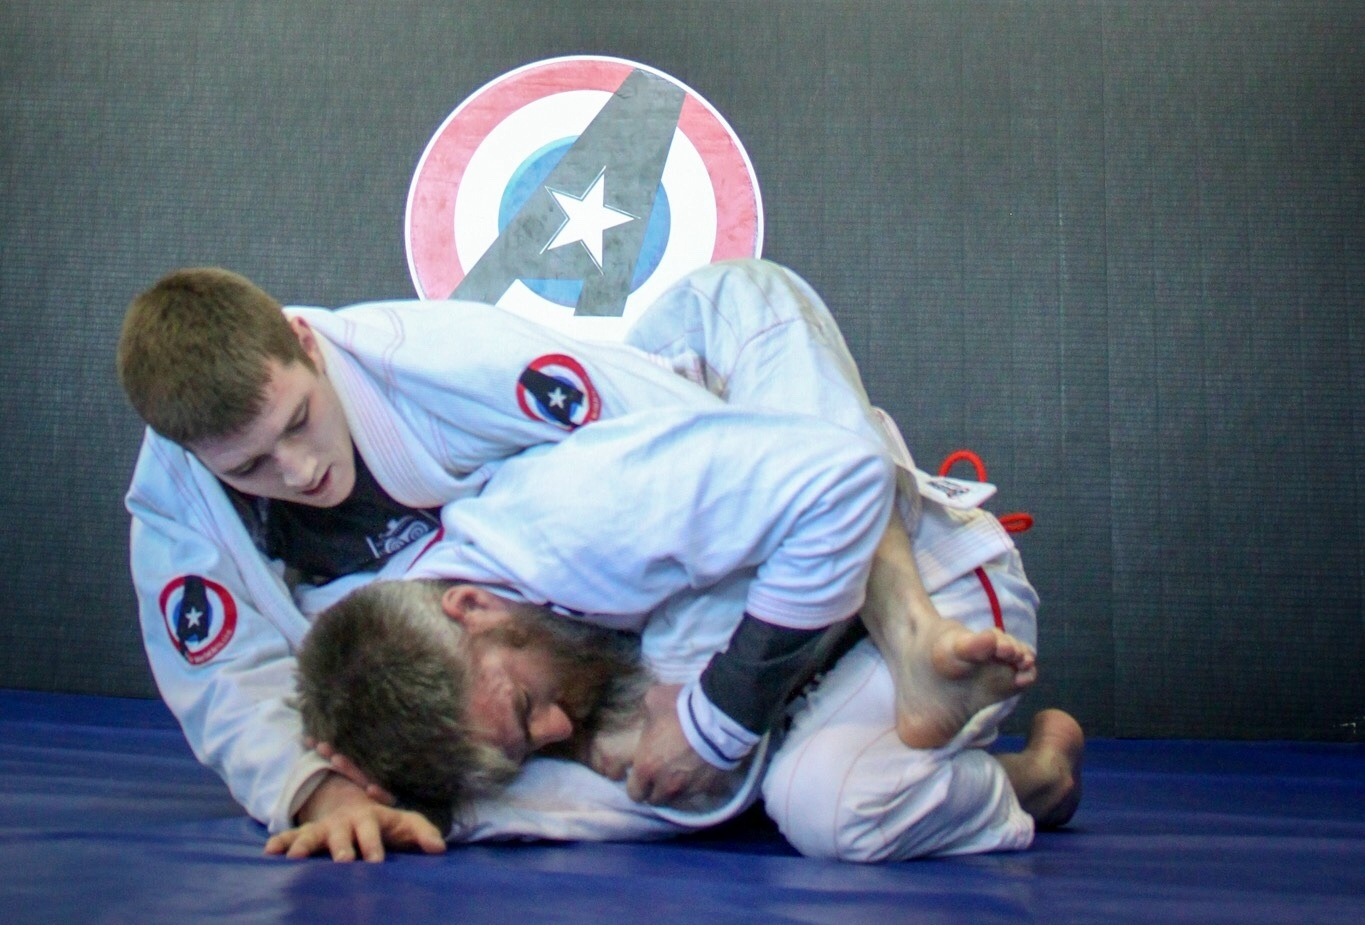 Of the countless moves in BJJ how do I decide what to focus on?